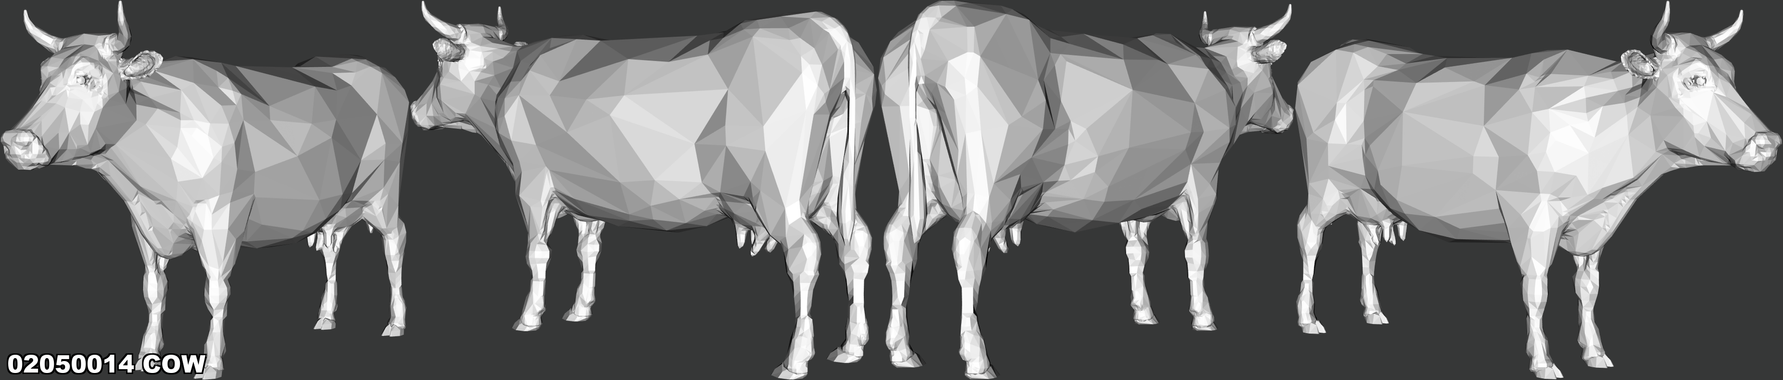 02050014 COW.png